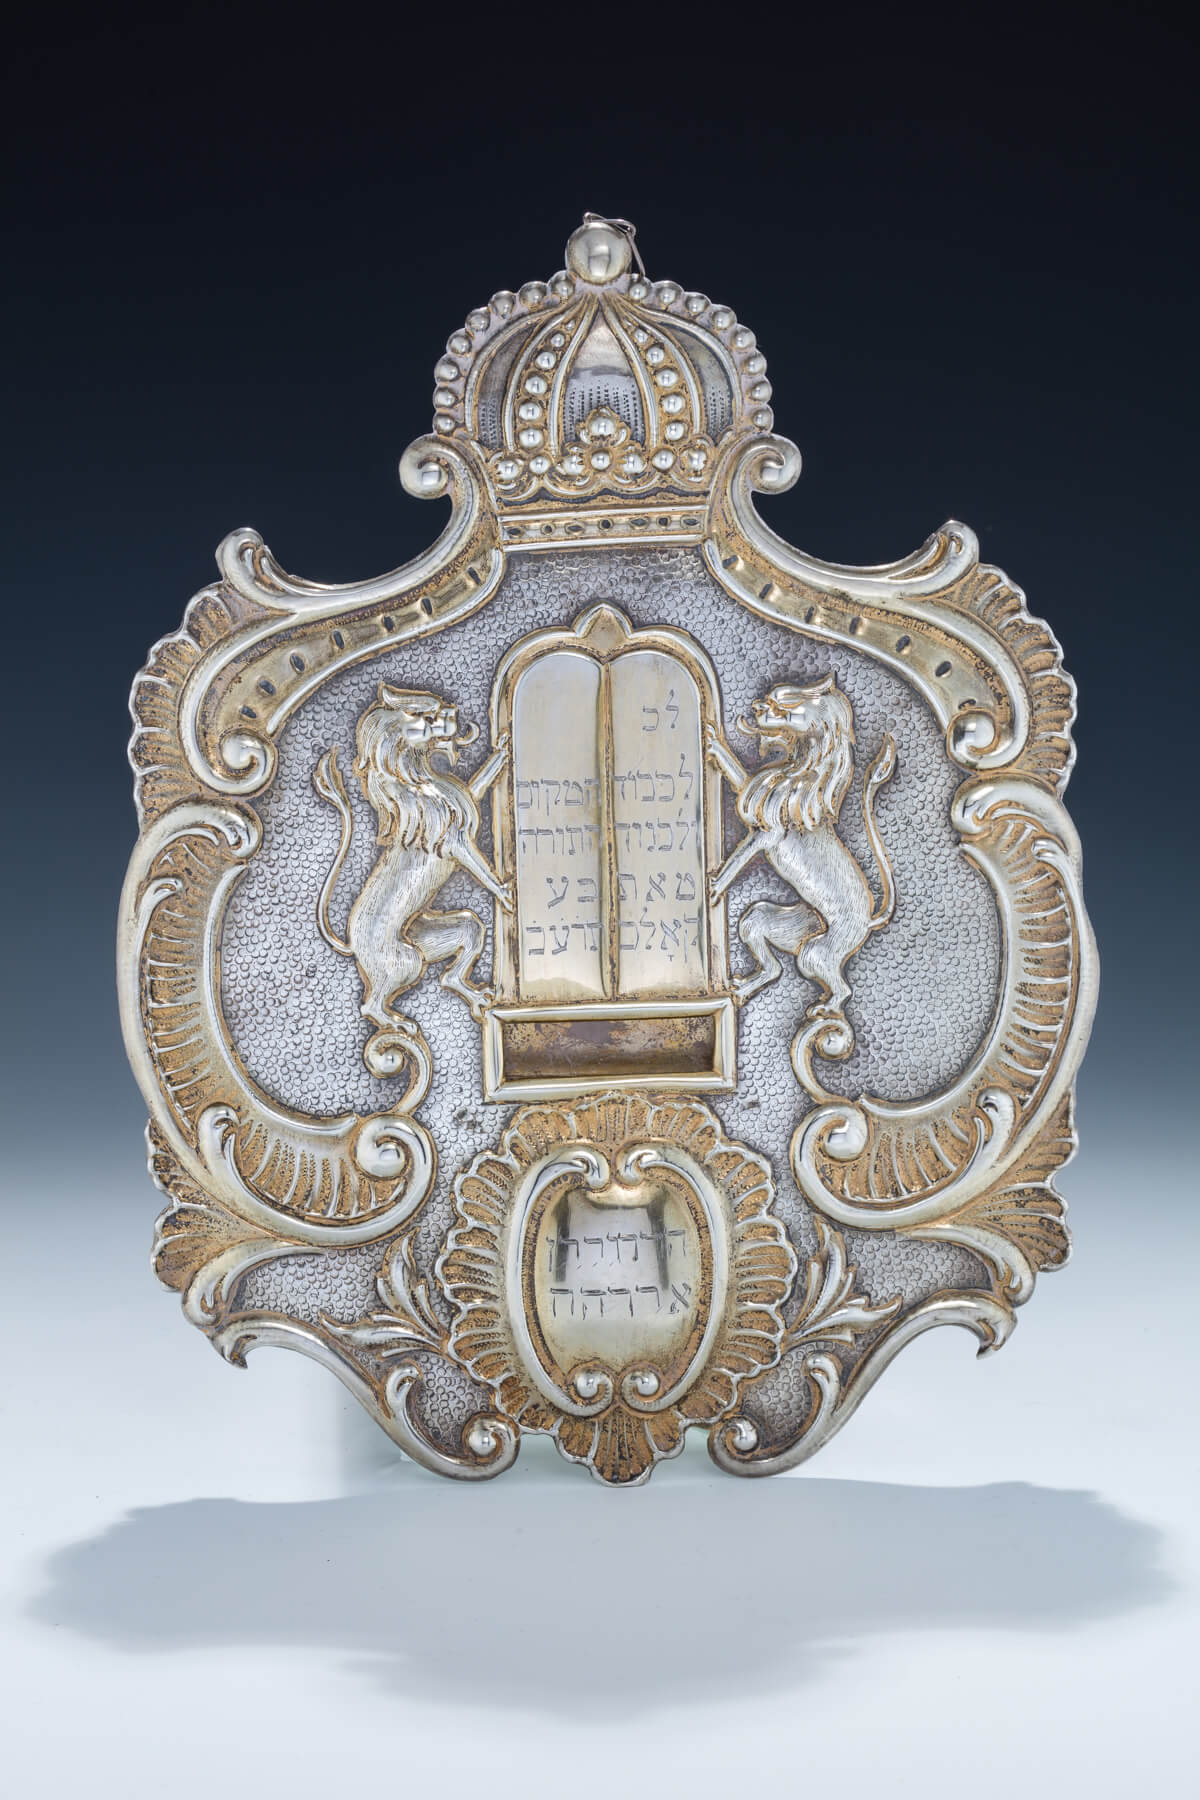 88. A Large Silver Gilded Torah Shield